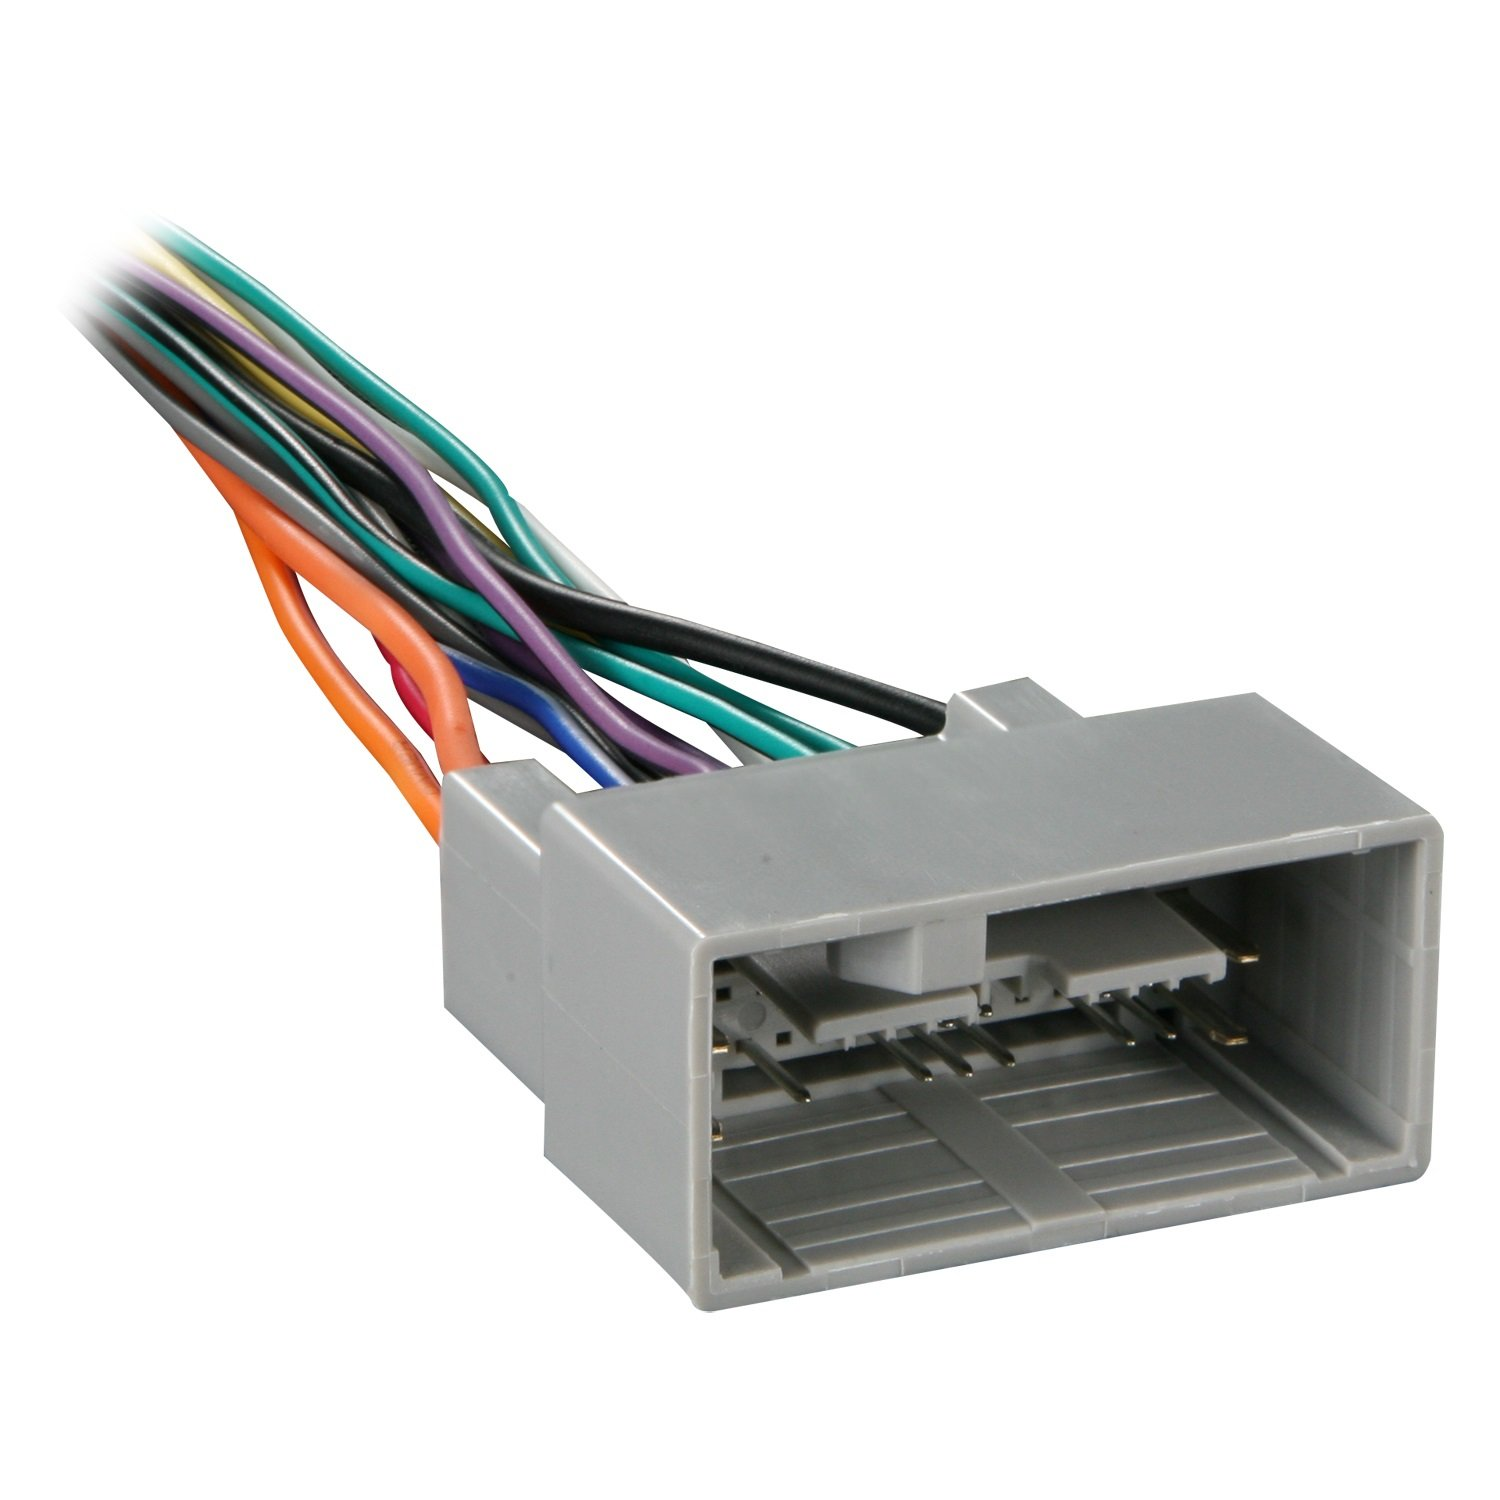 613Kg8IWI7L._SL1500_ amazon com metra 70 1729 radio wiring harness for honda 2008 up metra wiring diagram at reclaimingppi.co